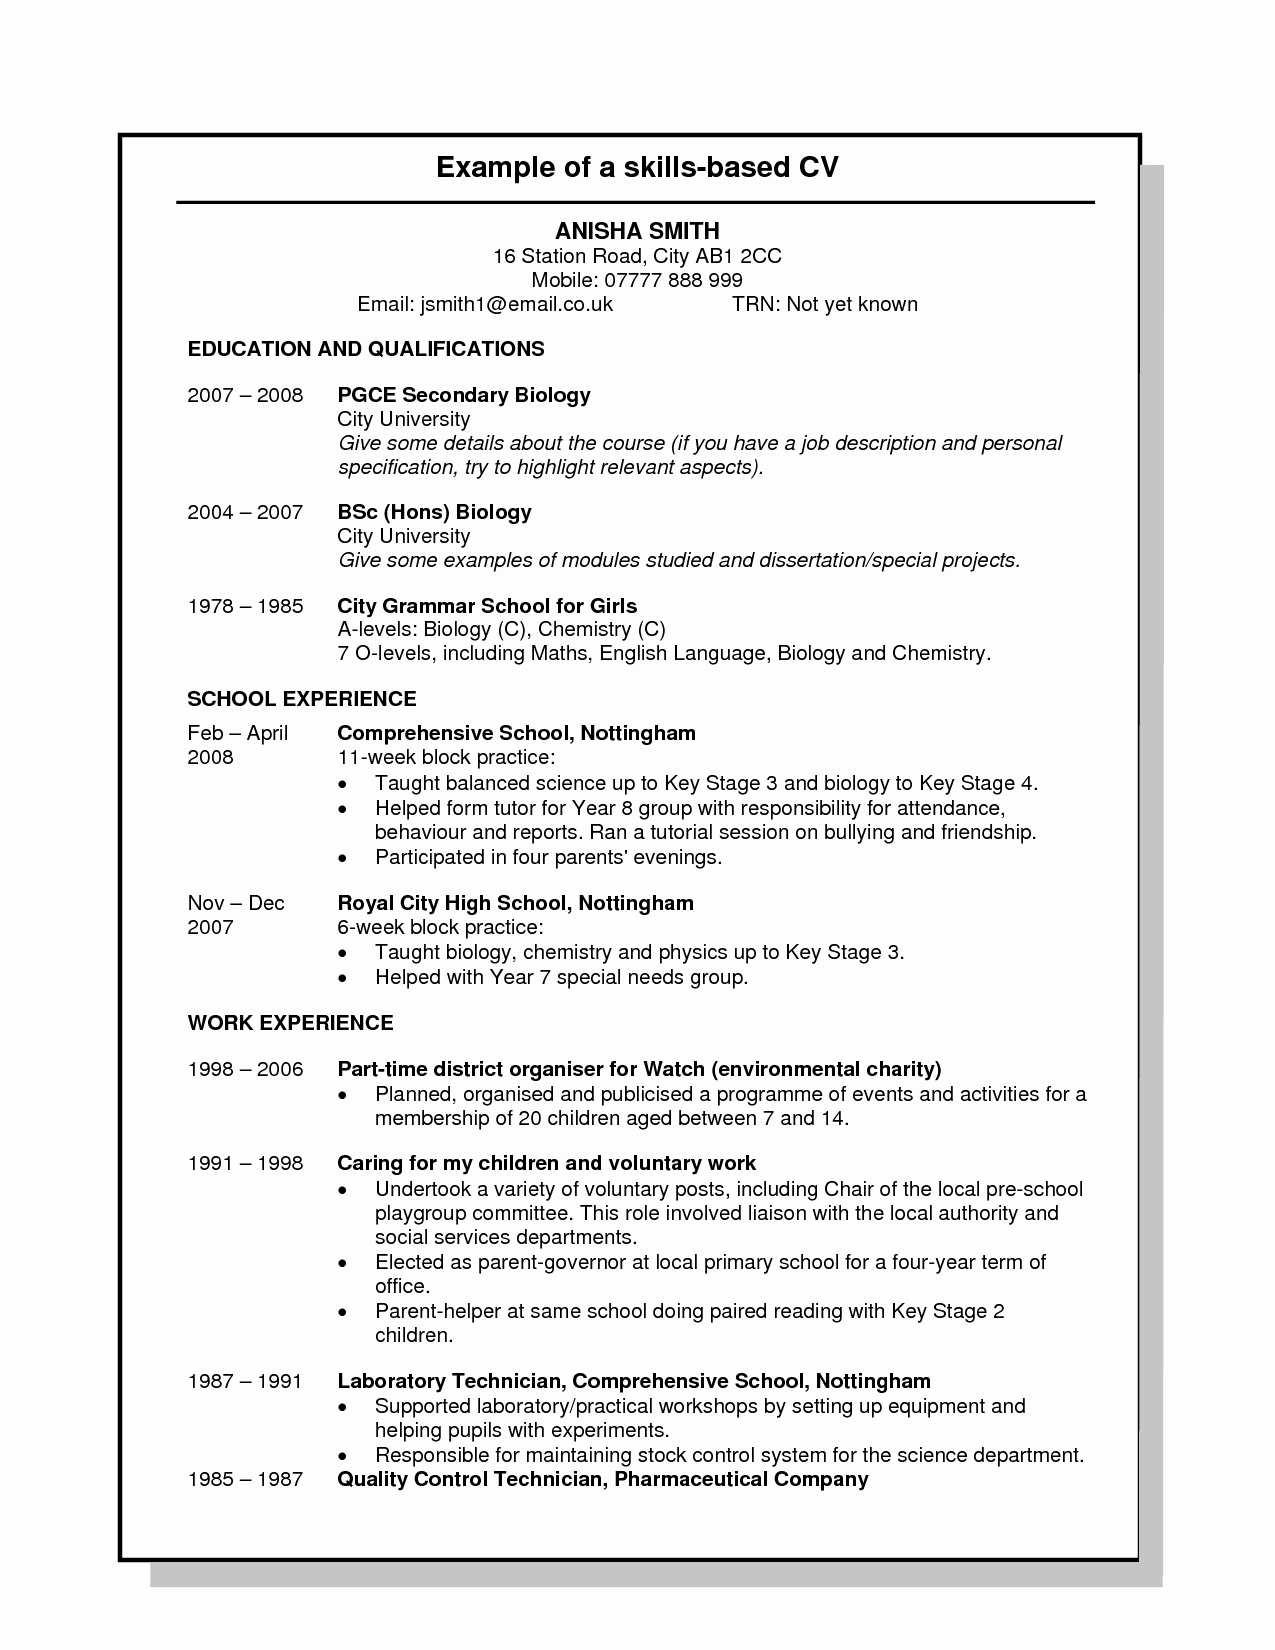 Resume Example Skills and Qualifications